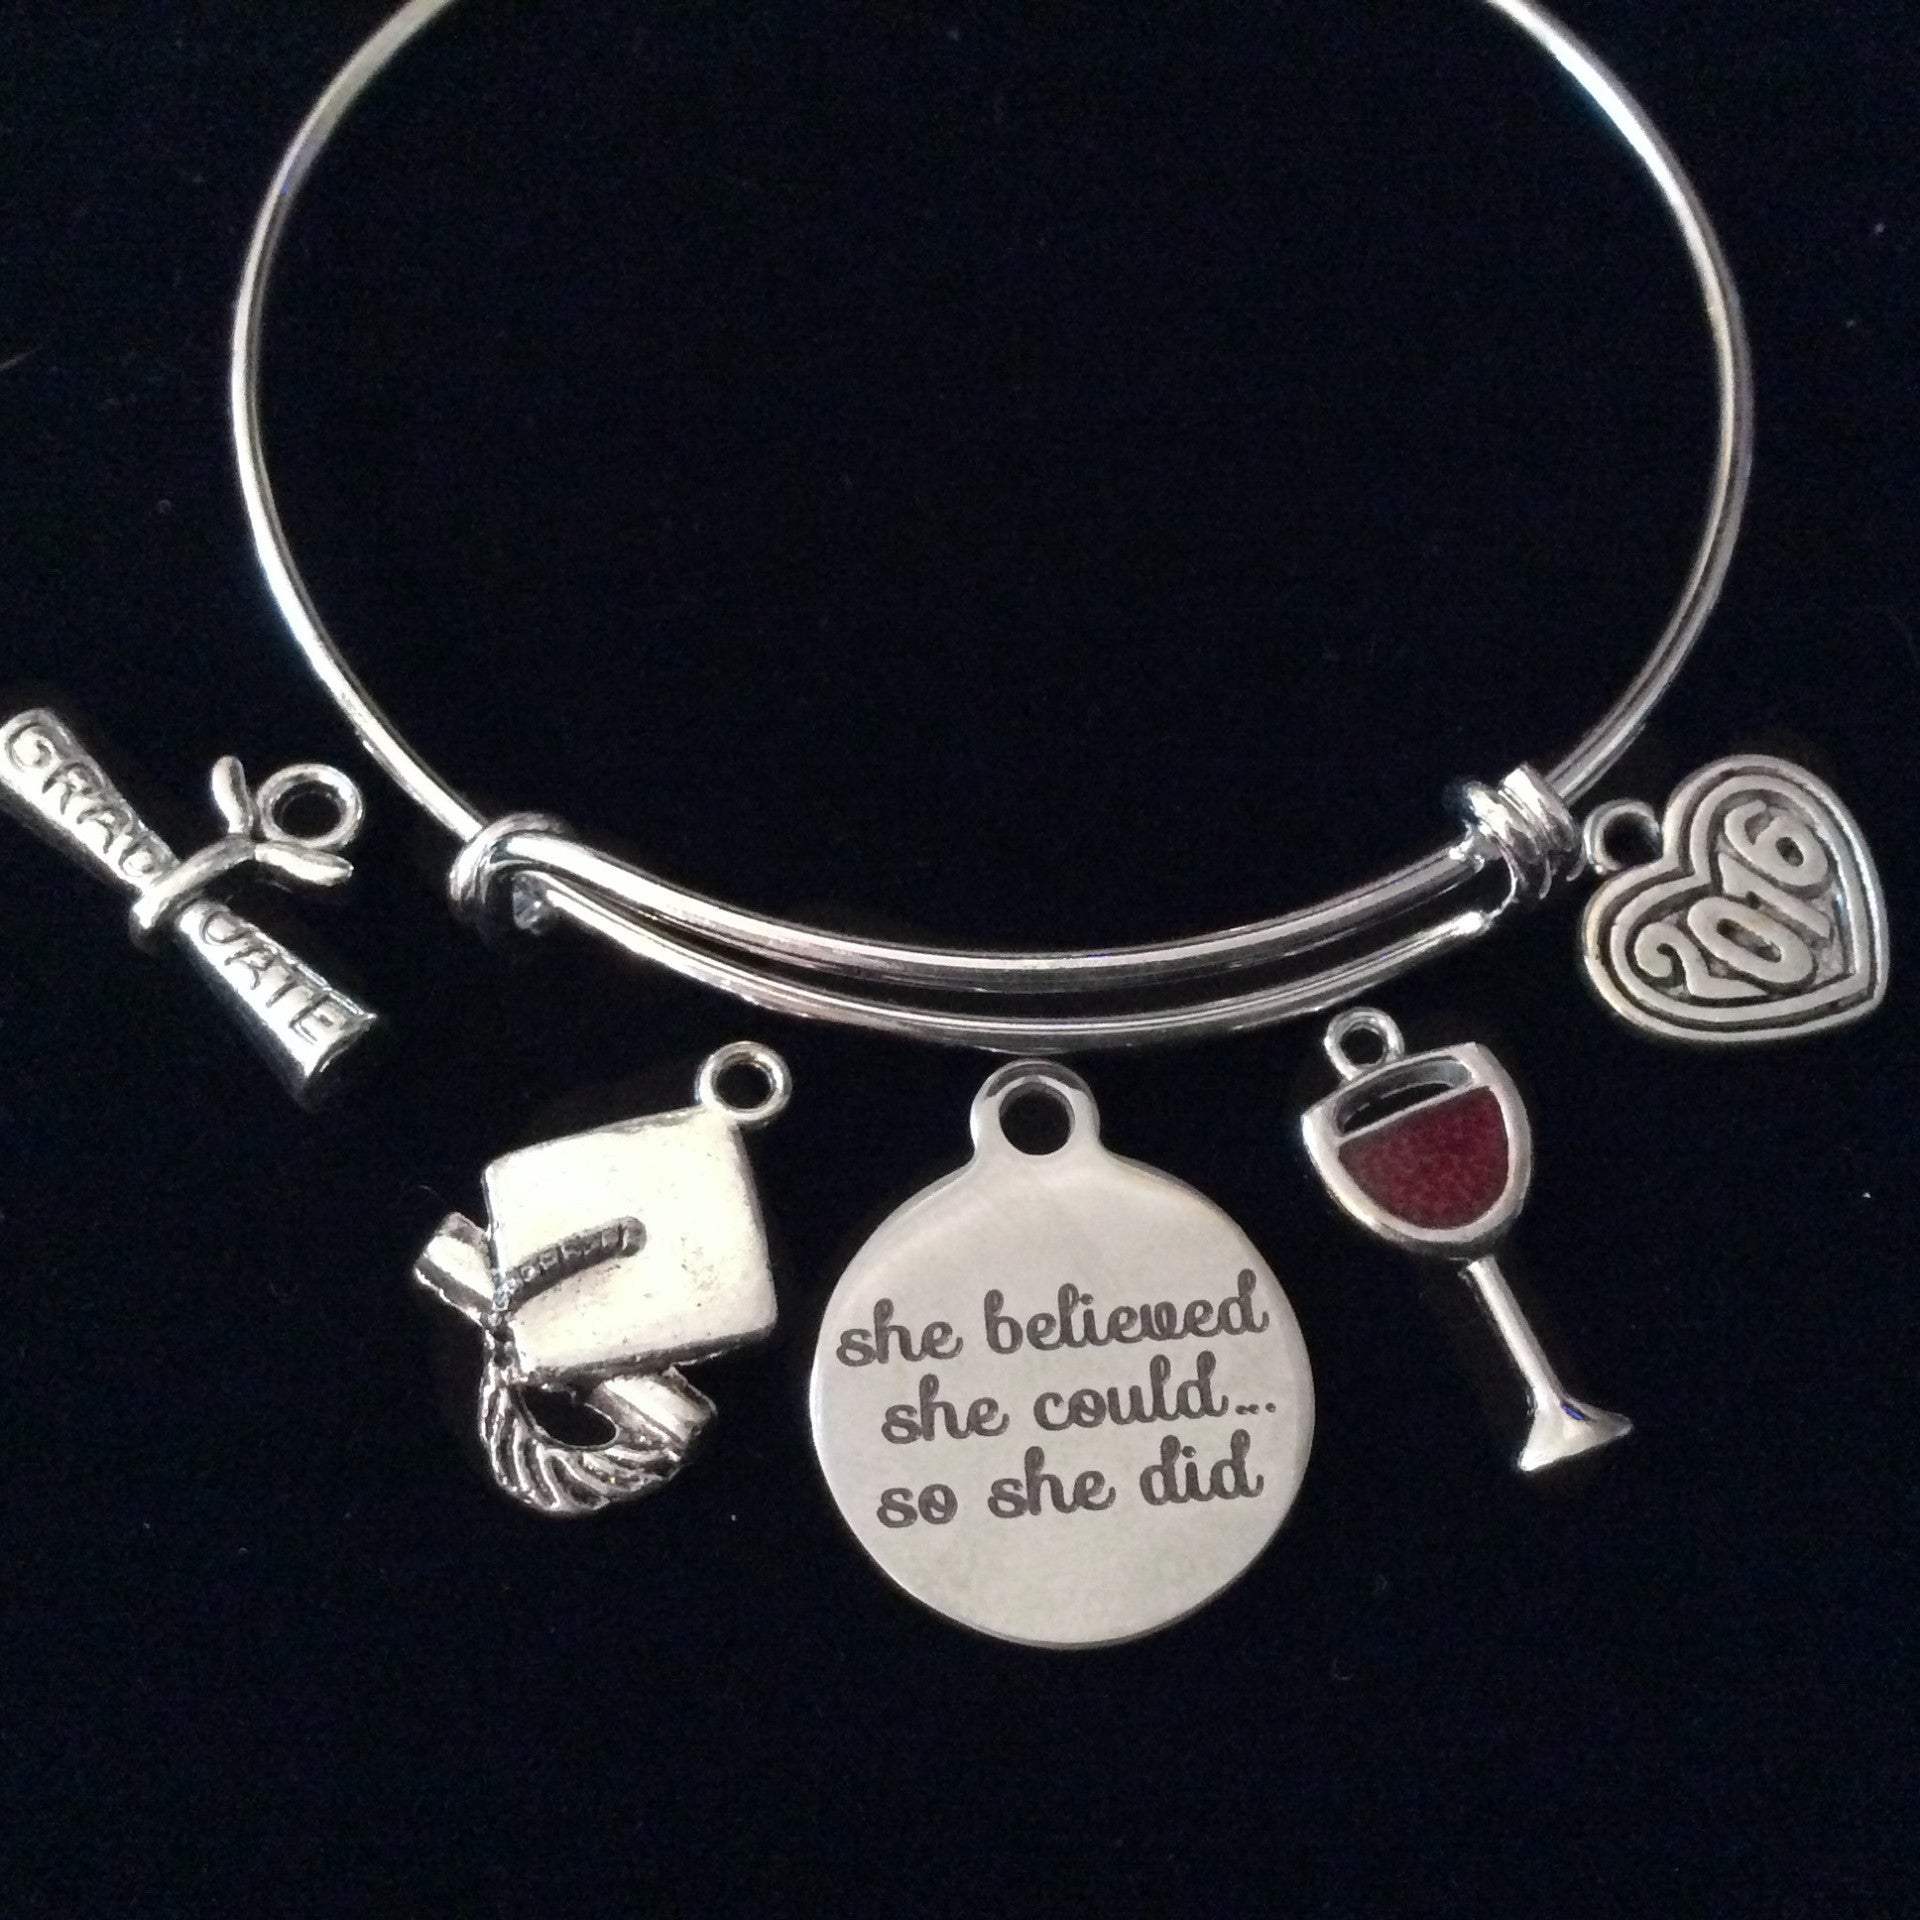 tech best charm daughter adjustable bangle sister friend graduation p fullxfull gift med bracelet caduceus il